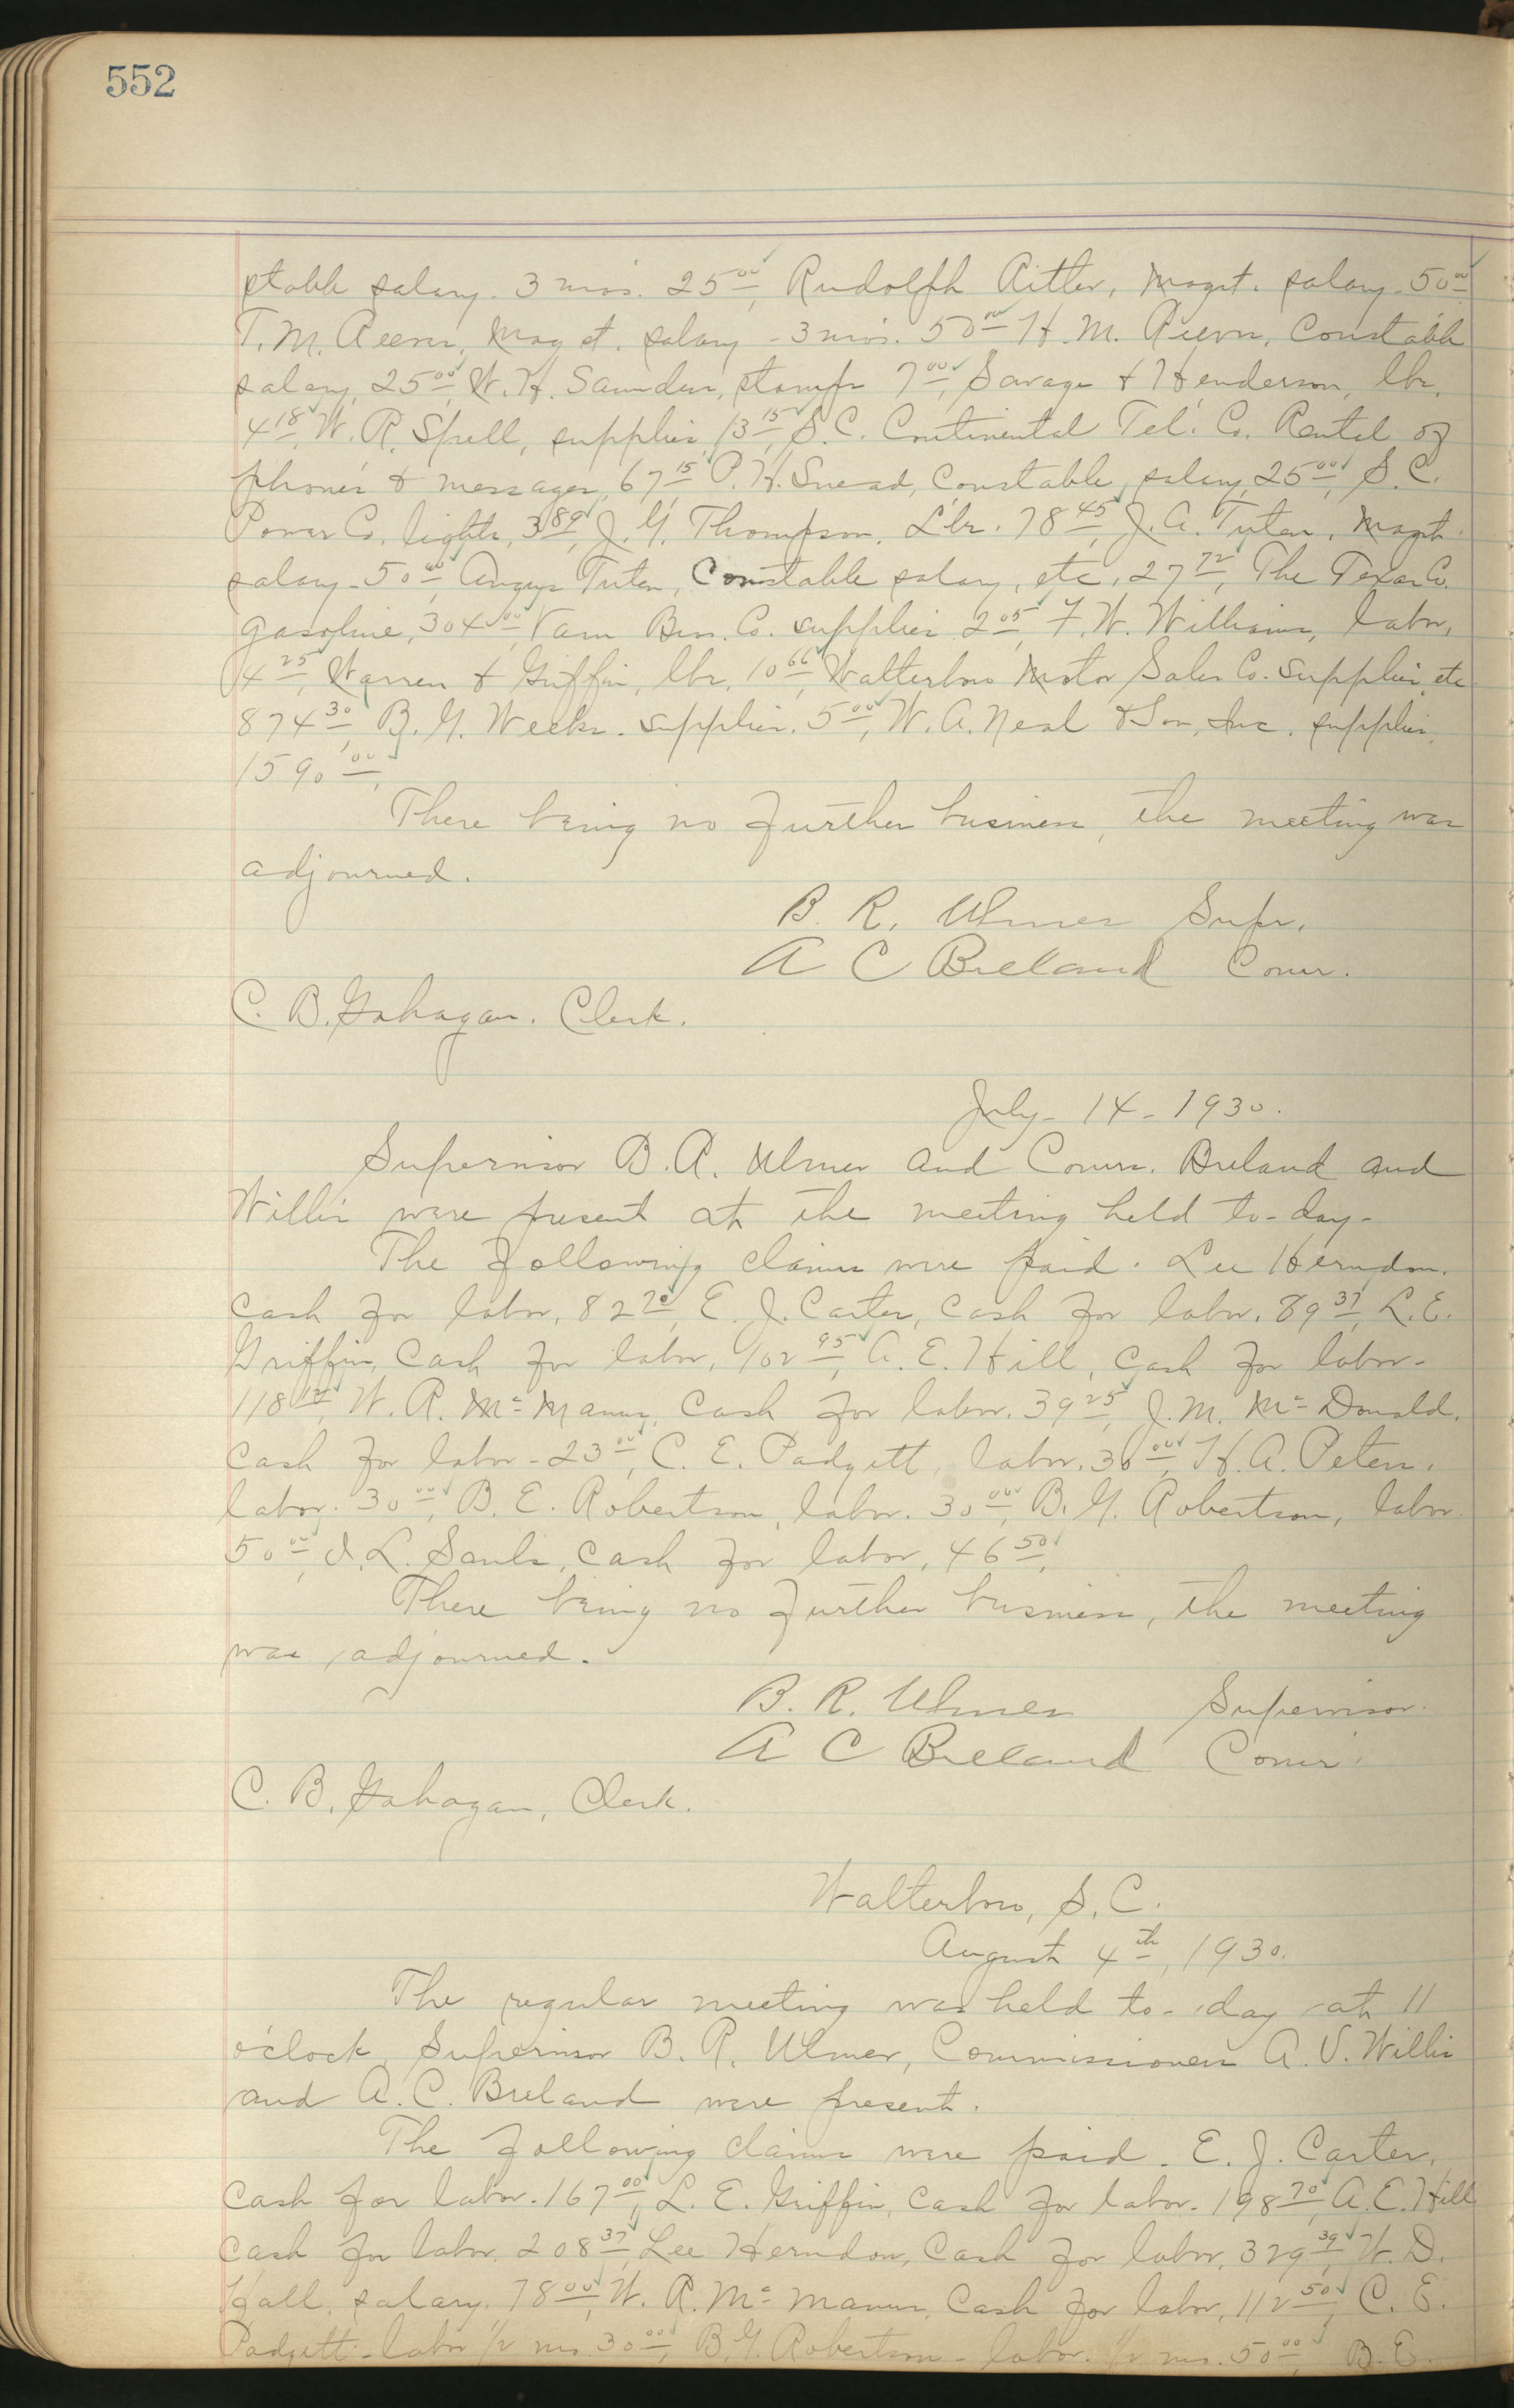 Colleton County Highway Commission Ledger, Page 552